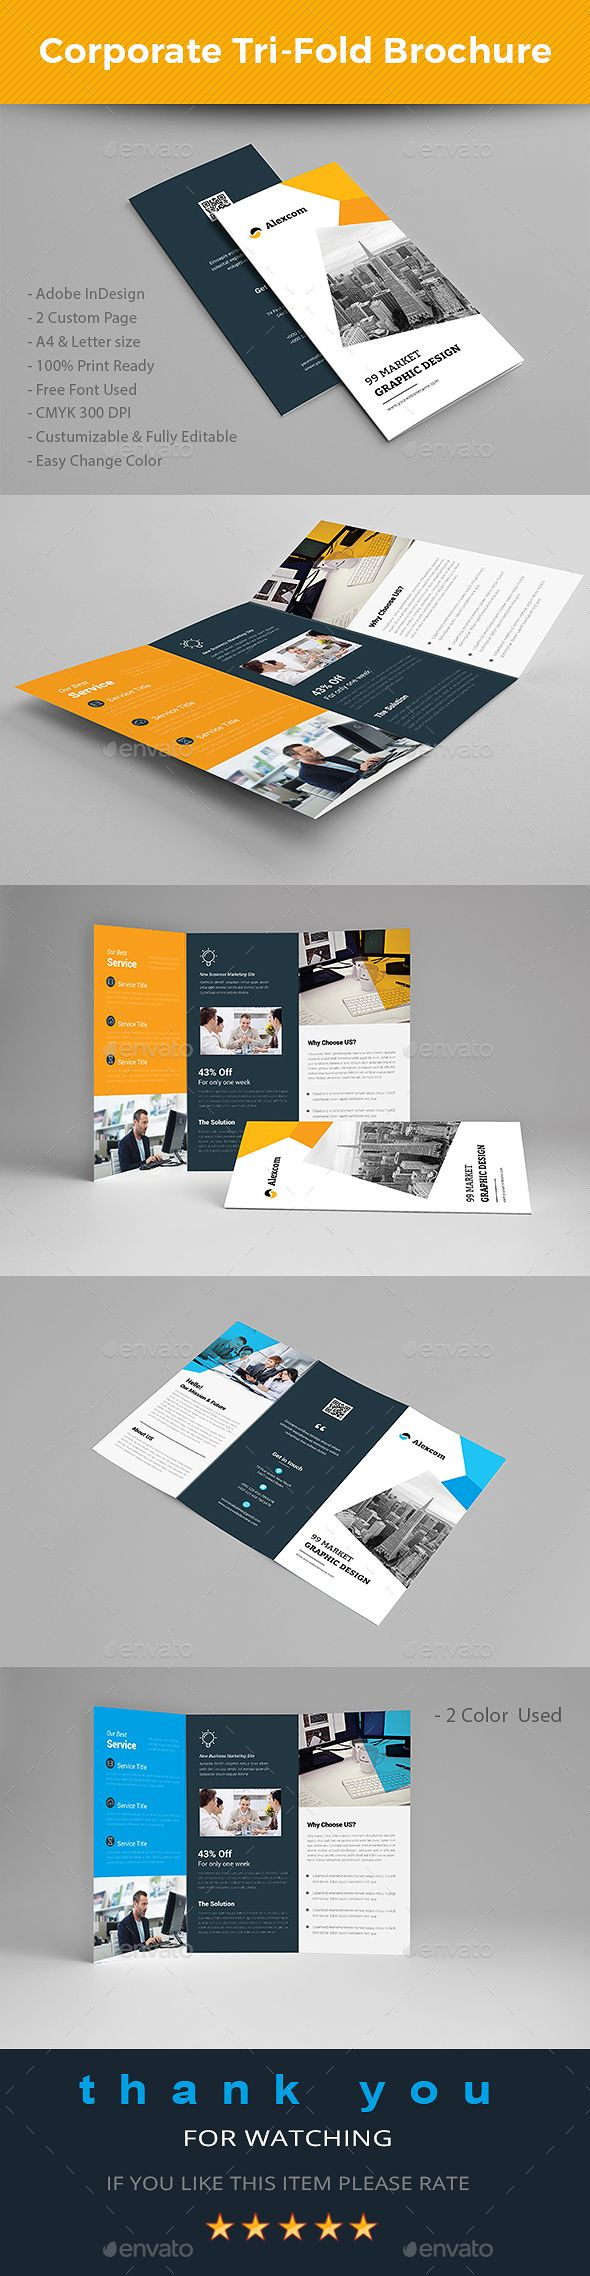 letter size tri fold brochure template Collection-Trifold Brochure Brochures Print Templates 10-k